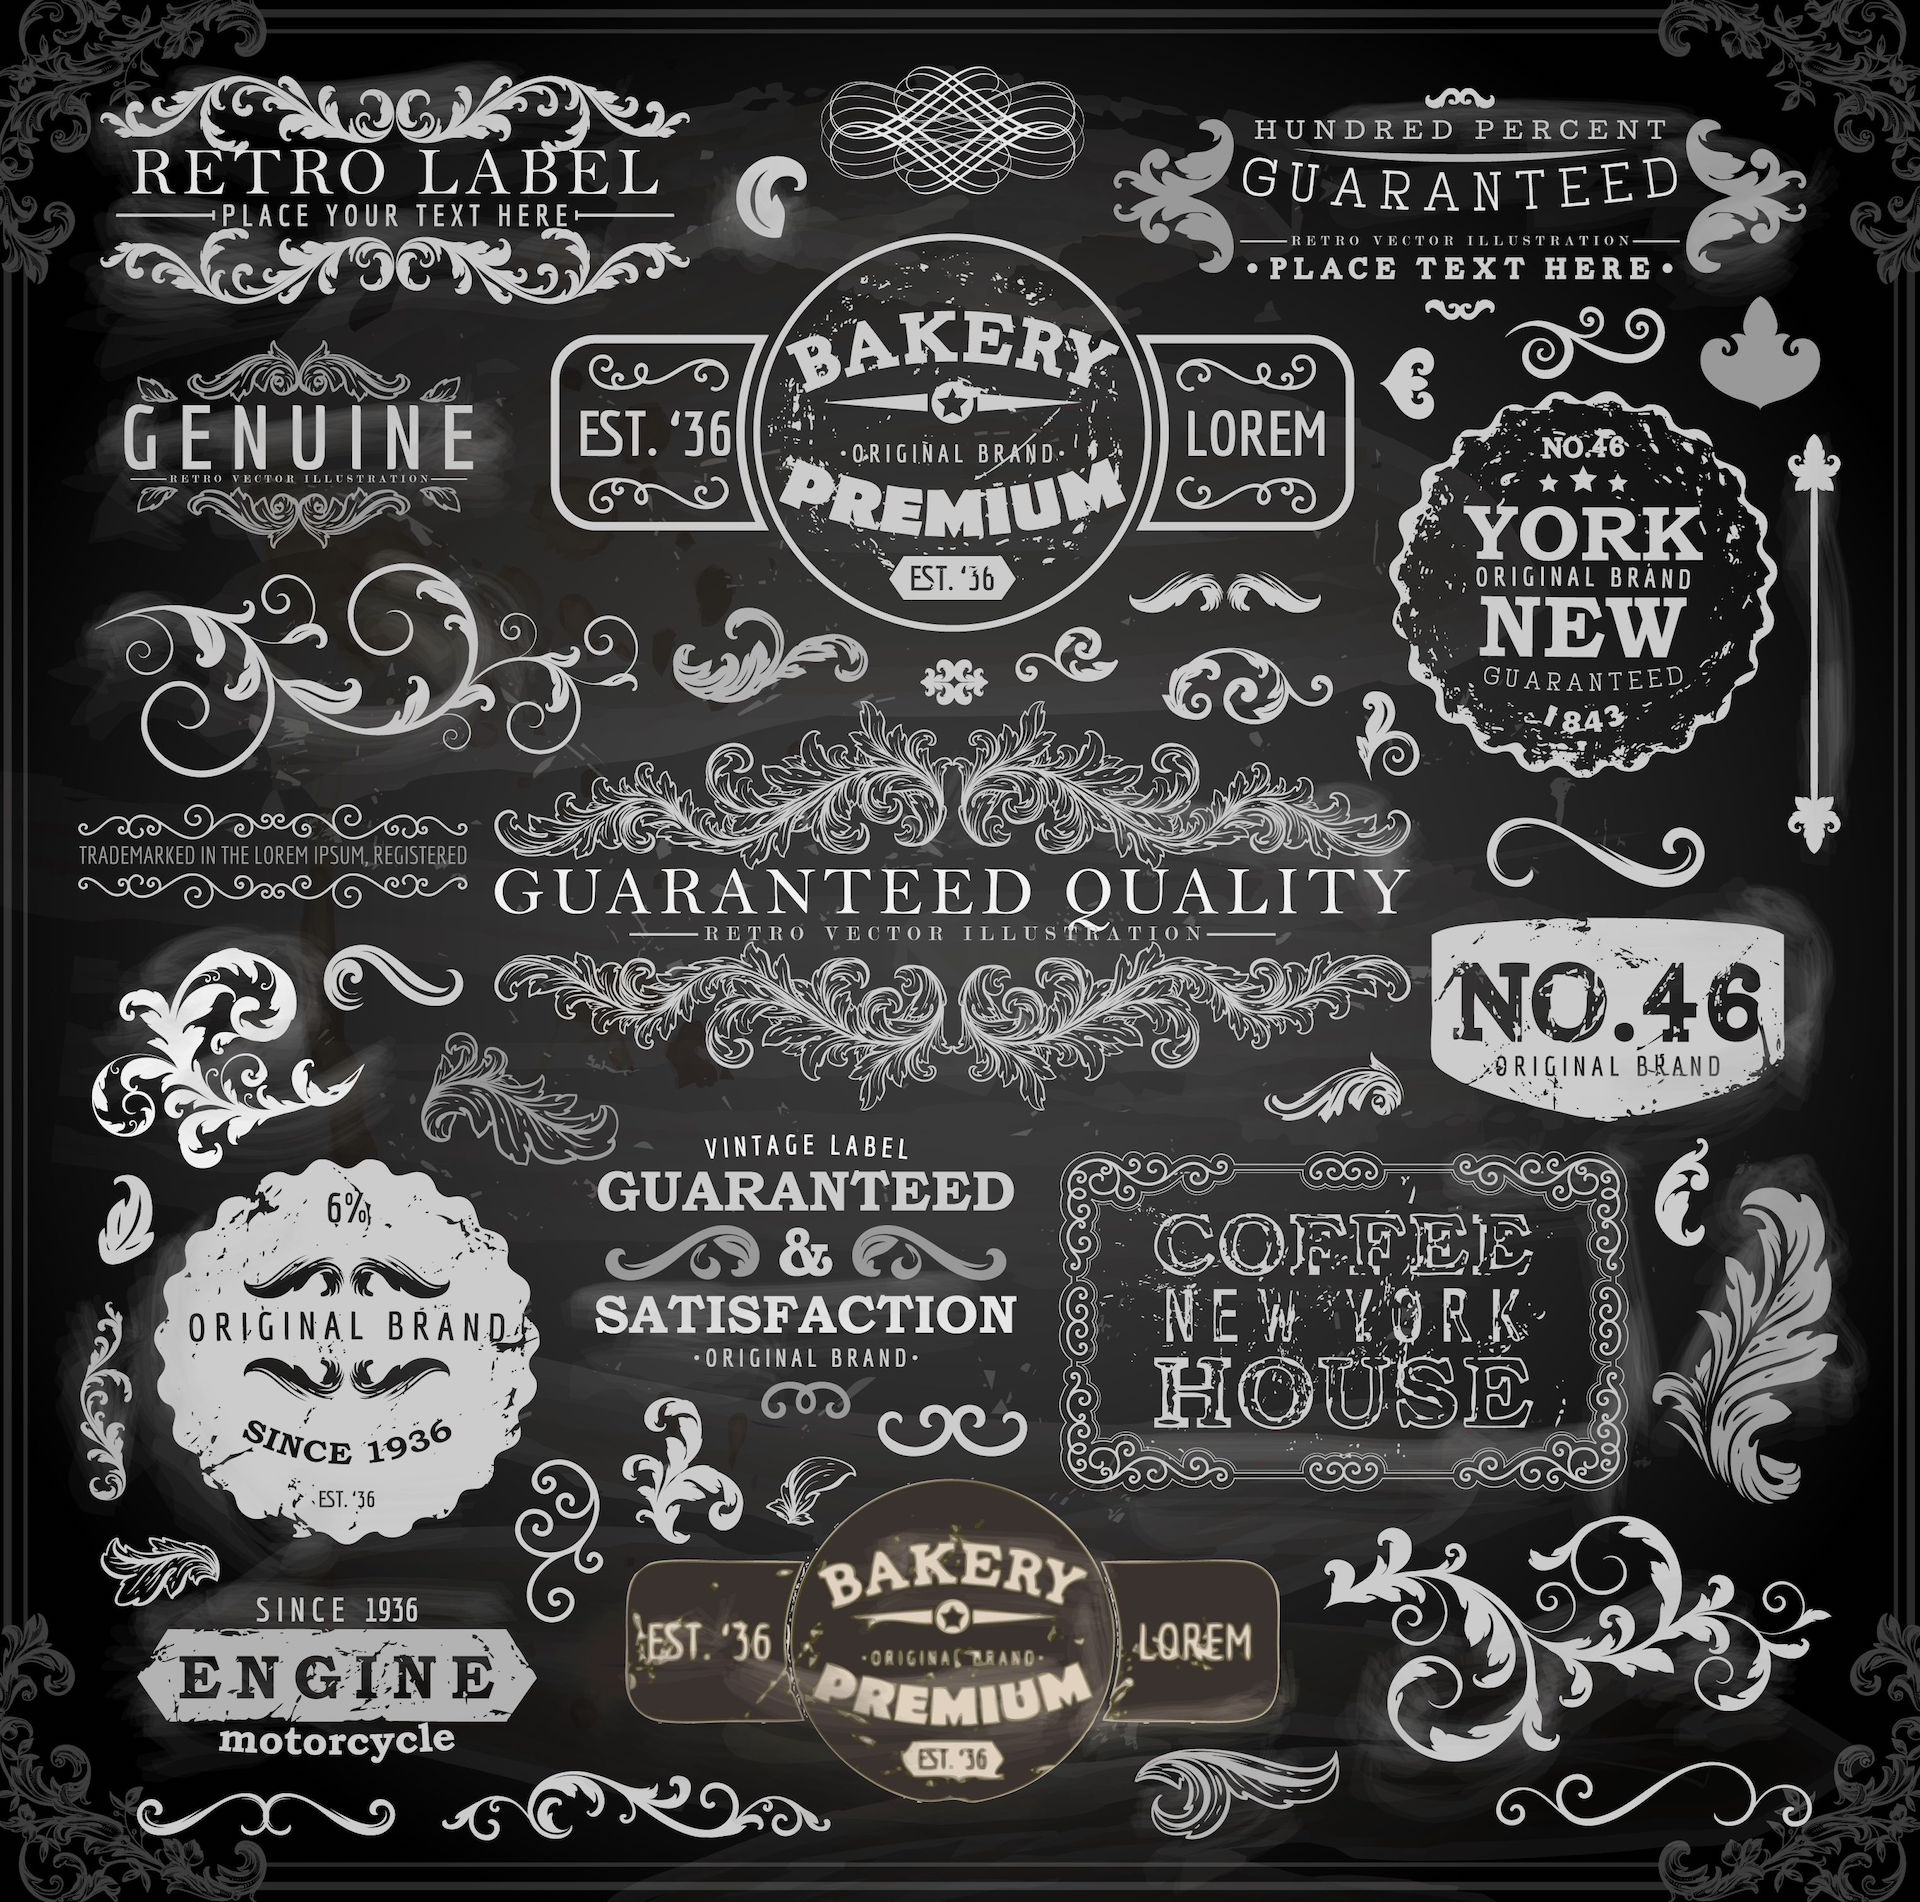 lessons-from-the-worlds-oldest-brands-infographic.jpg